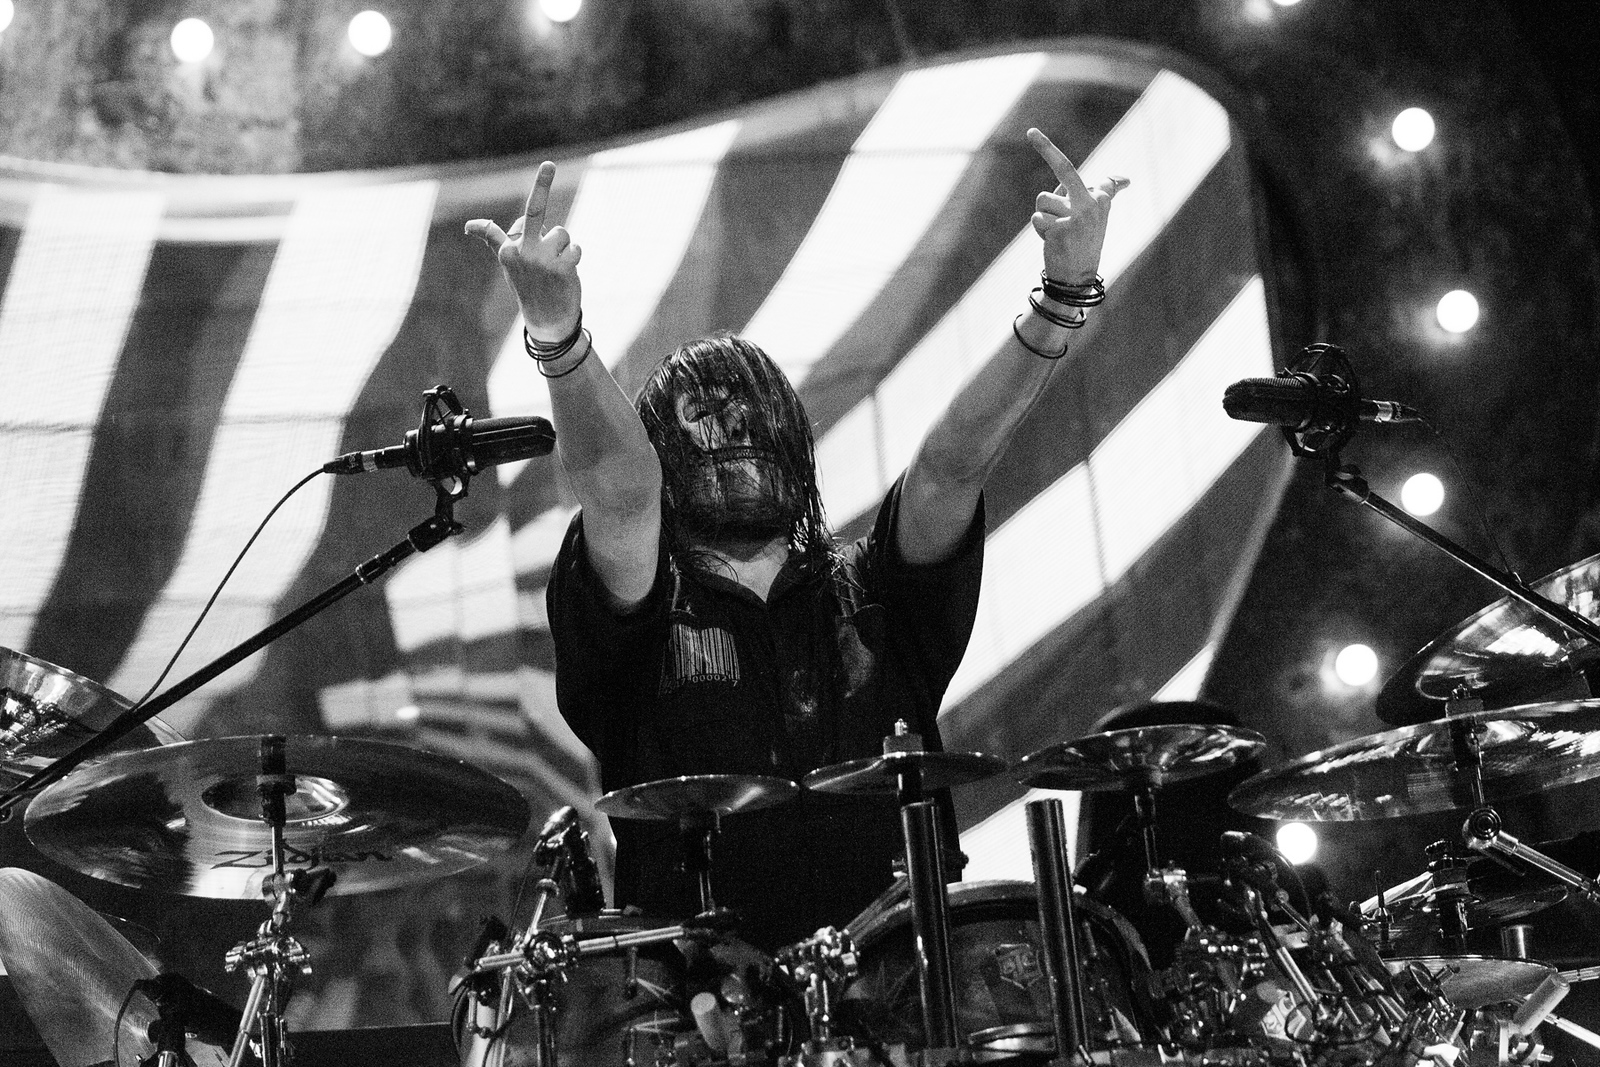 Jay Weinberg of Slipknot by Adam Elmakias at Knotfest 2015